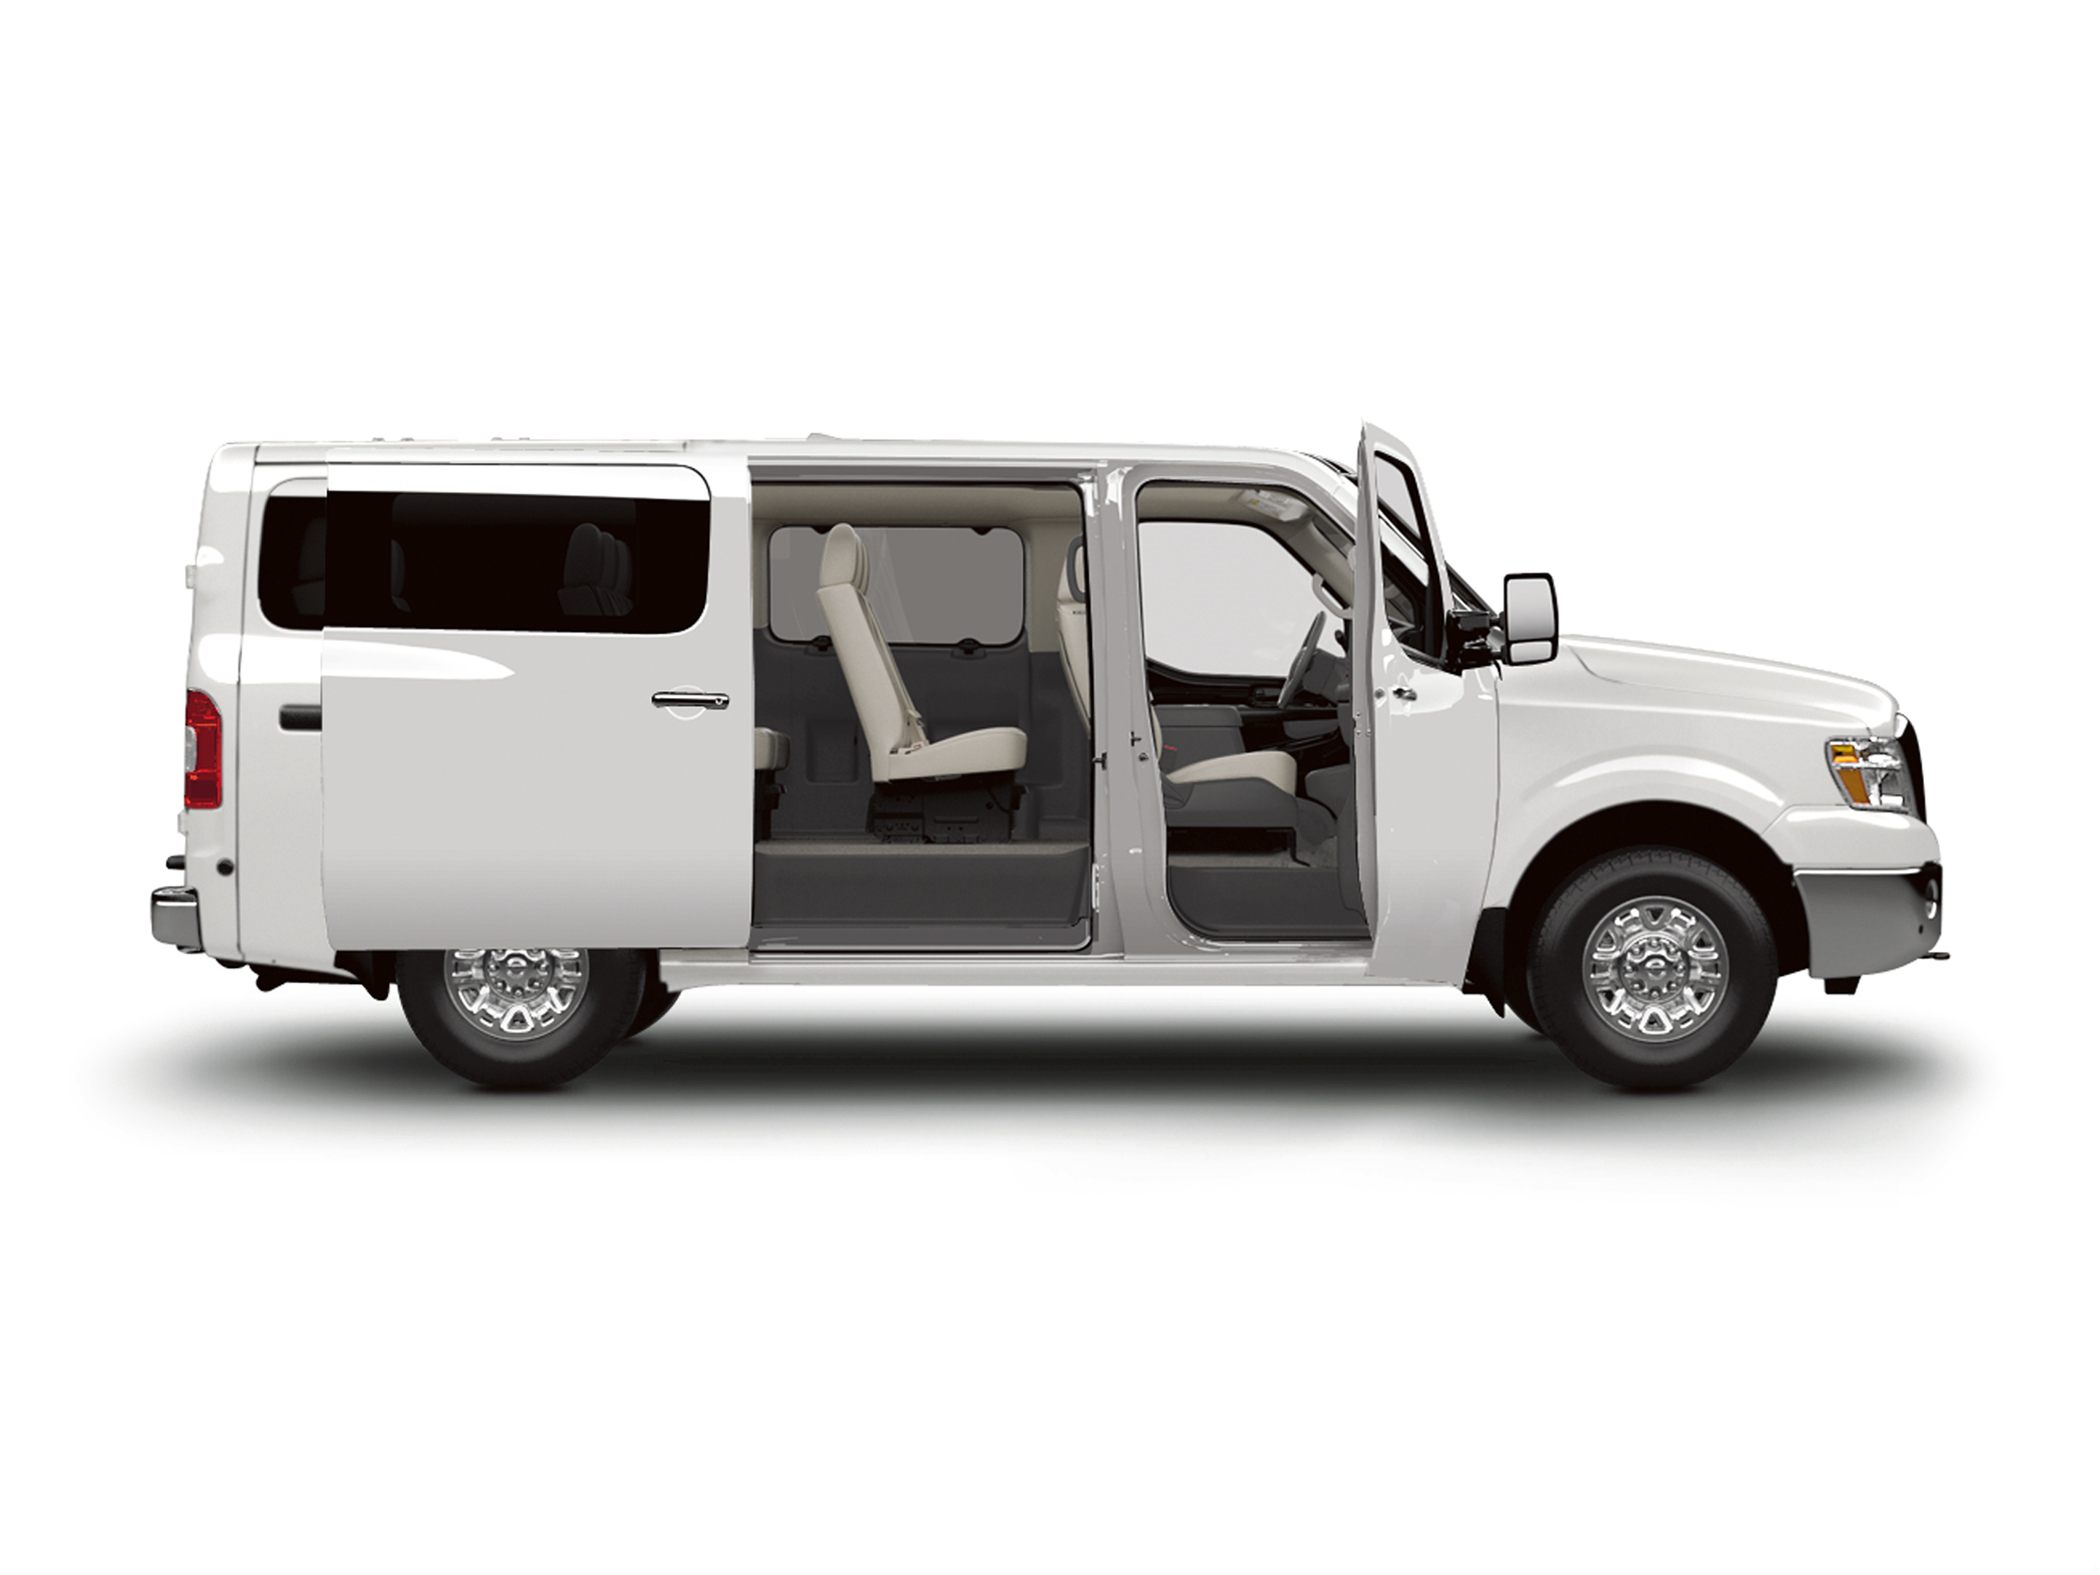 nissan ab search sherwood tp or for new passenger cargo v nv park sale in